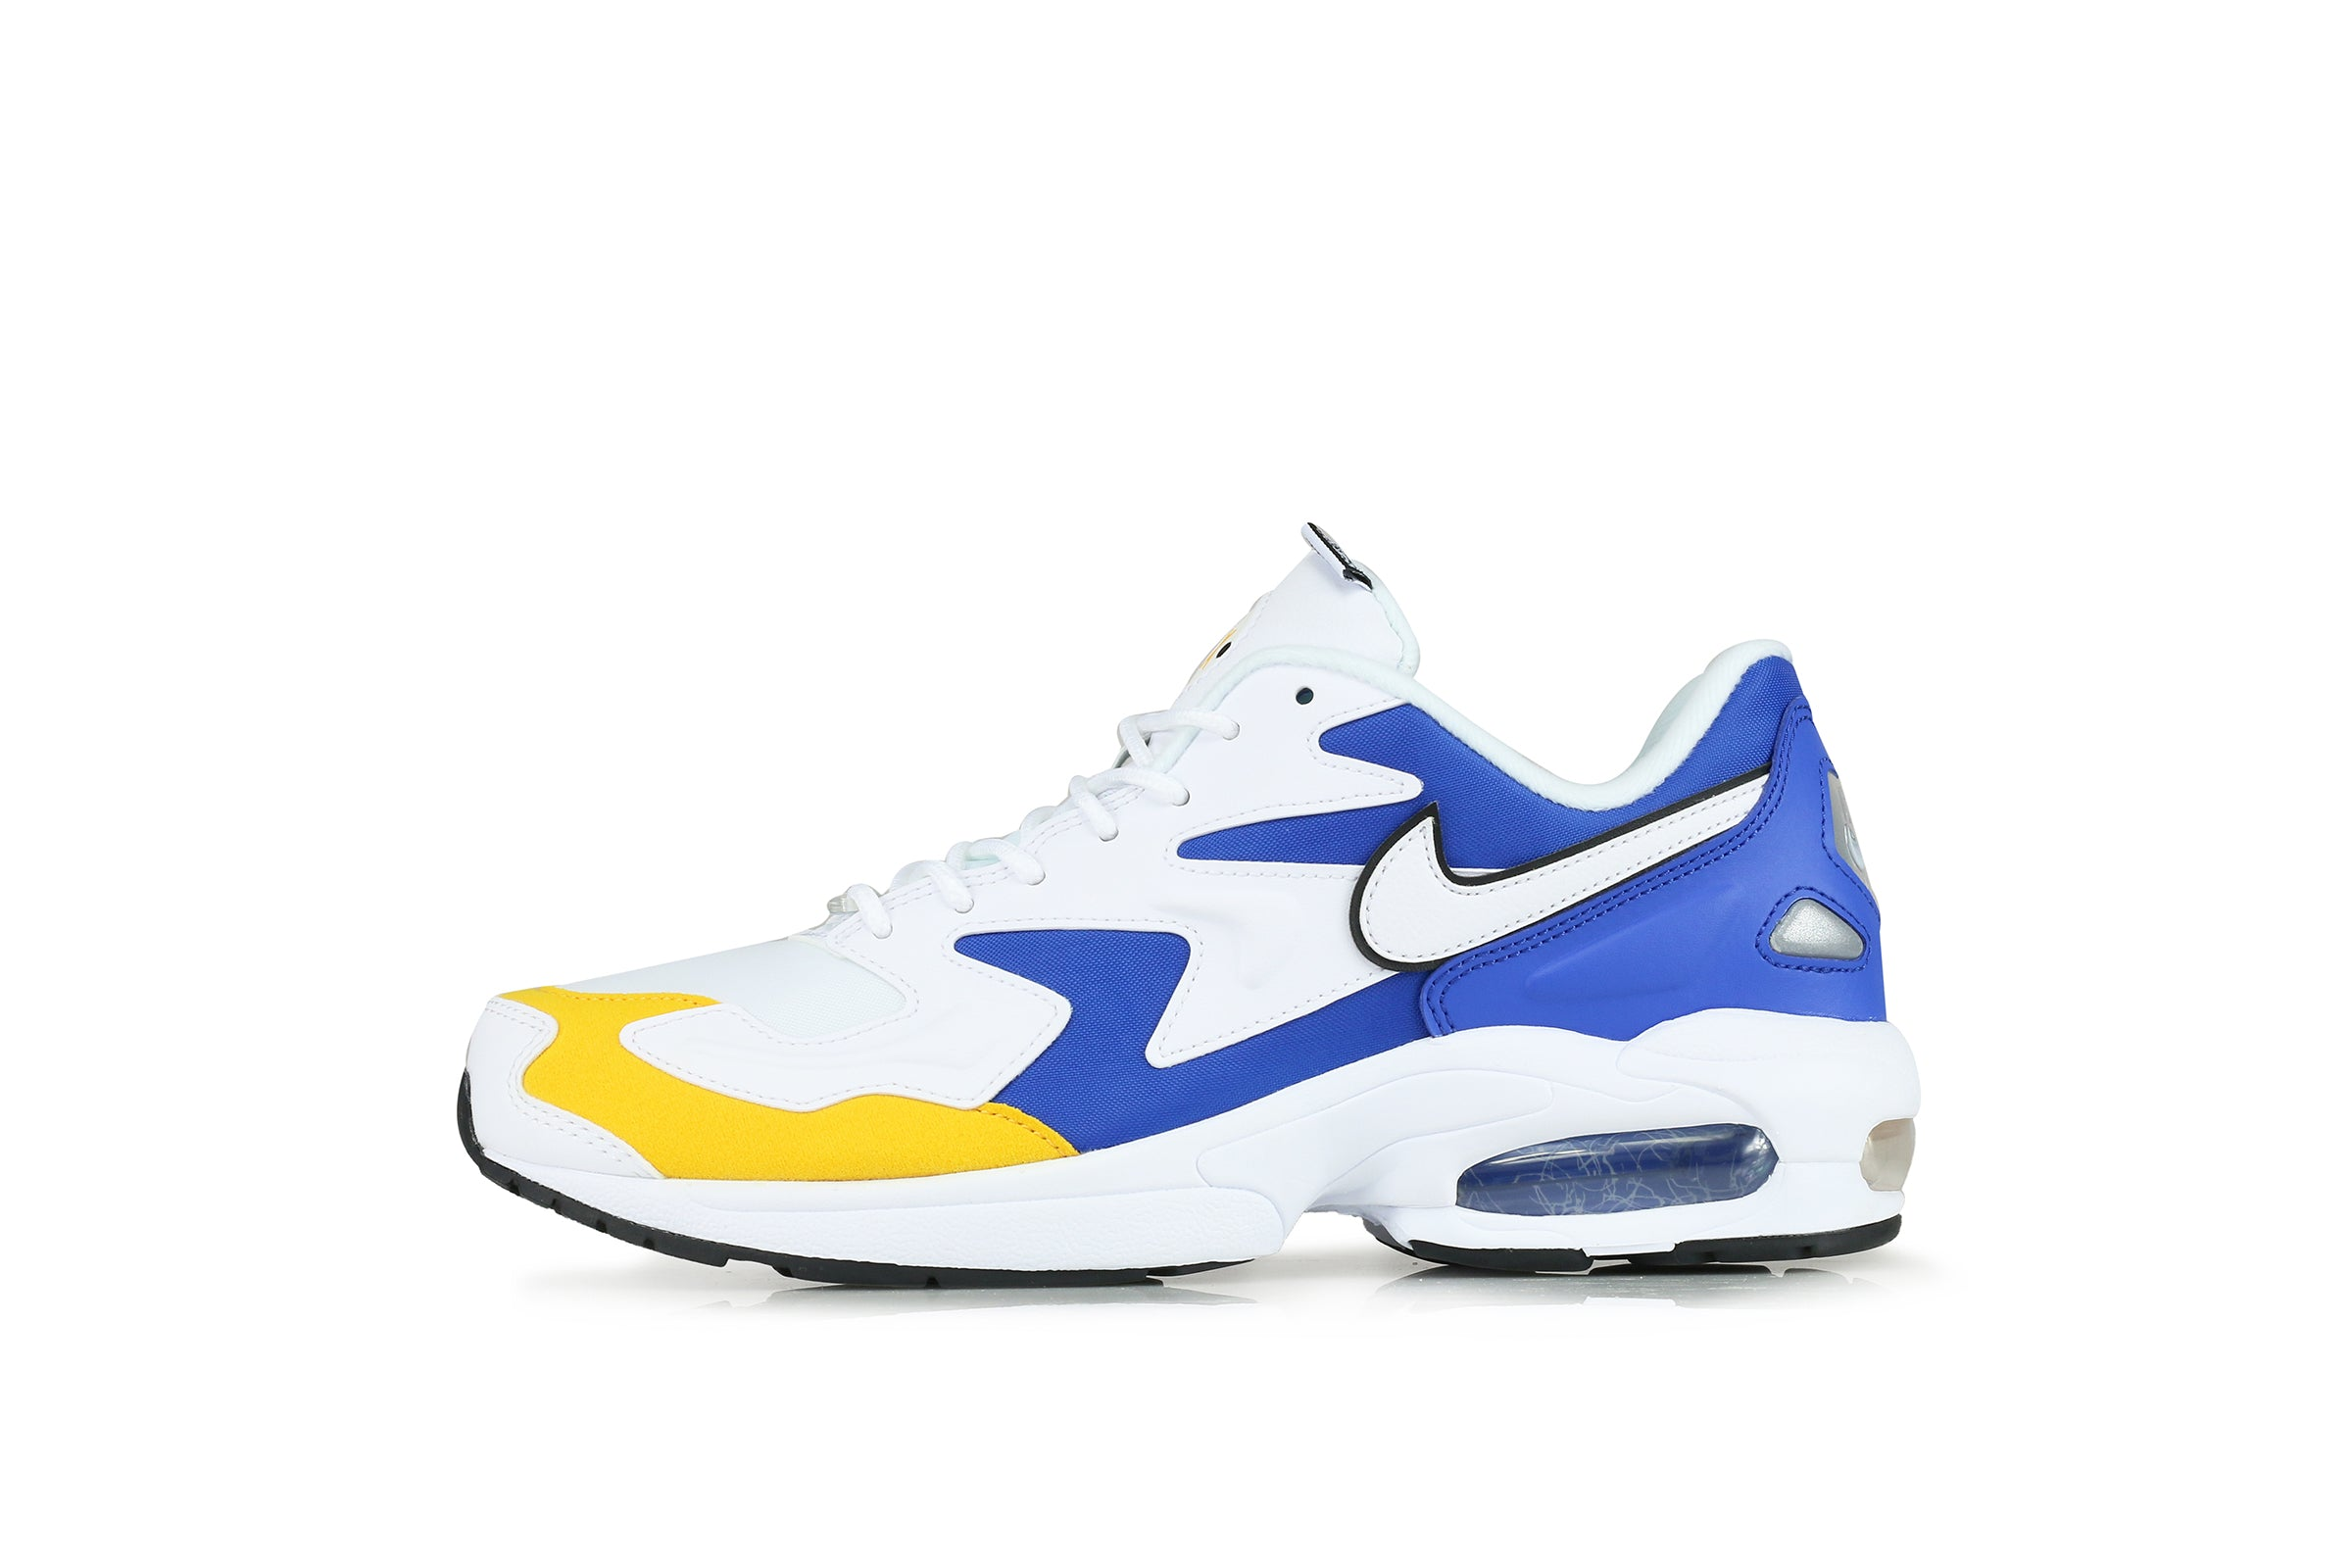 reputable site 8c99f 02f70 Nike Air Max2 Light Premium